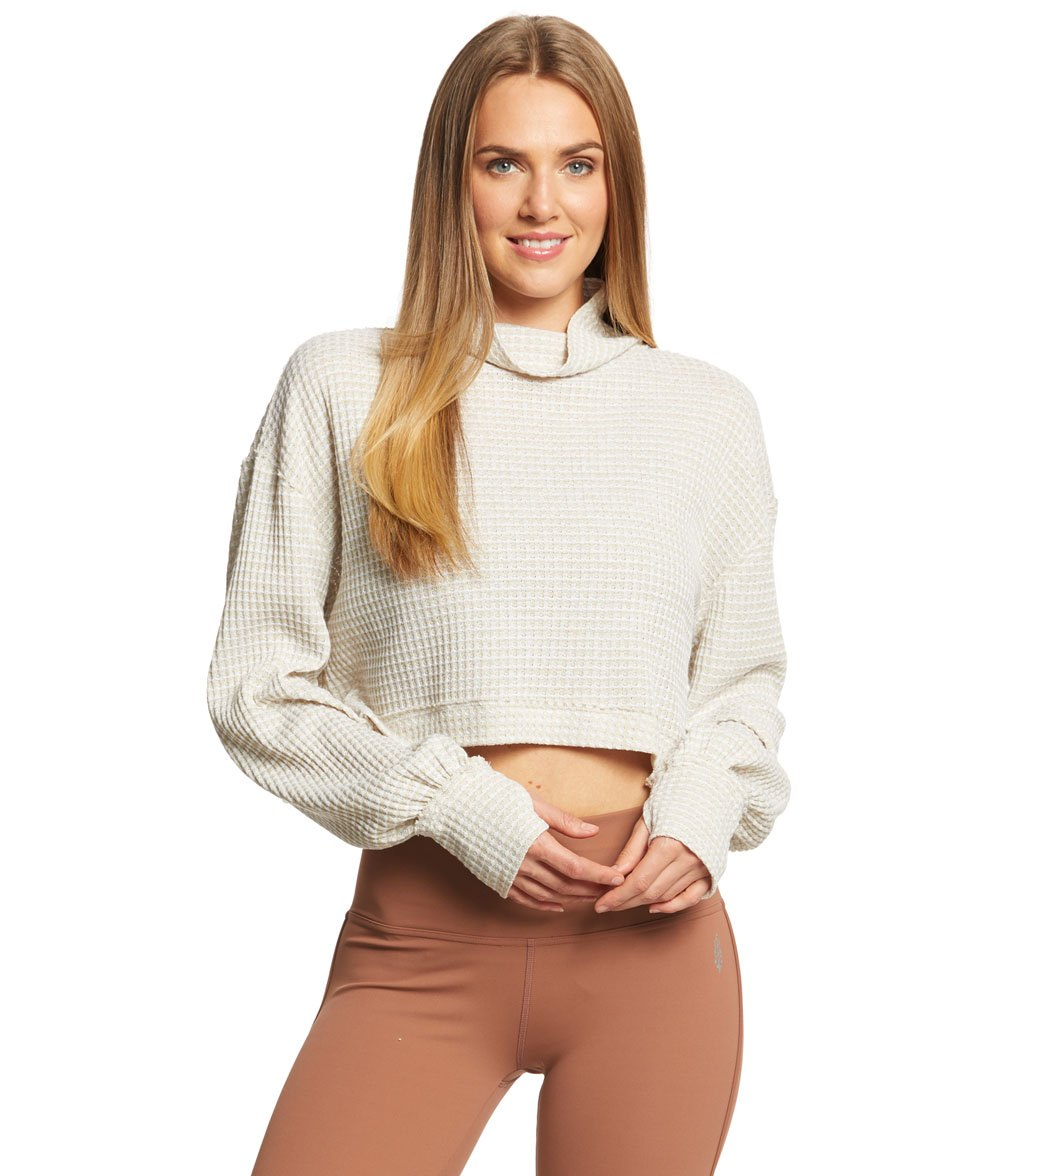 4bfcc795040 Free People Movement BK Long Sleeve Crop Top at YogaOutlet.com - Free  Shipping